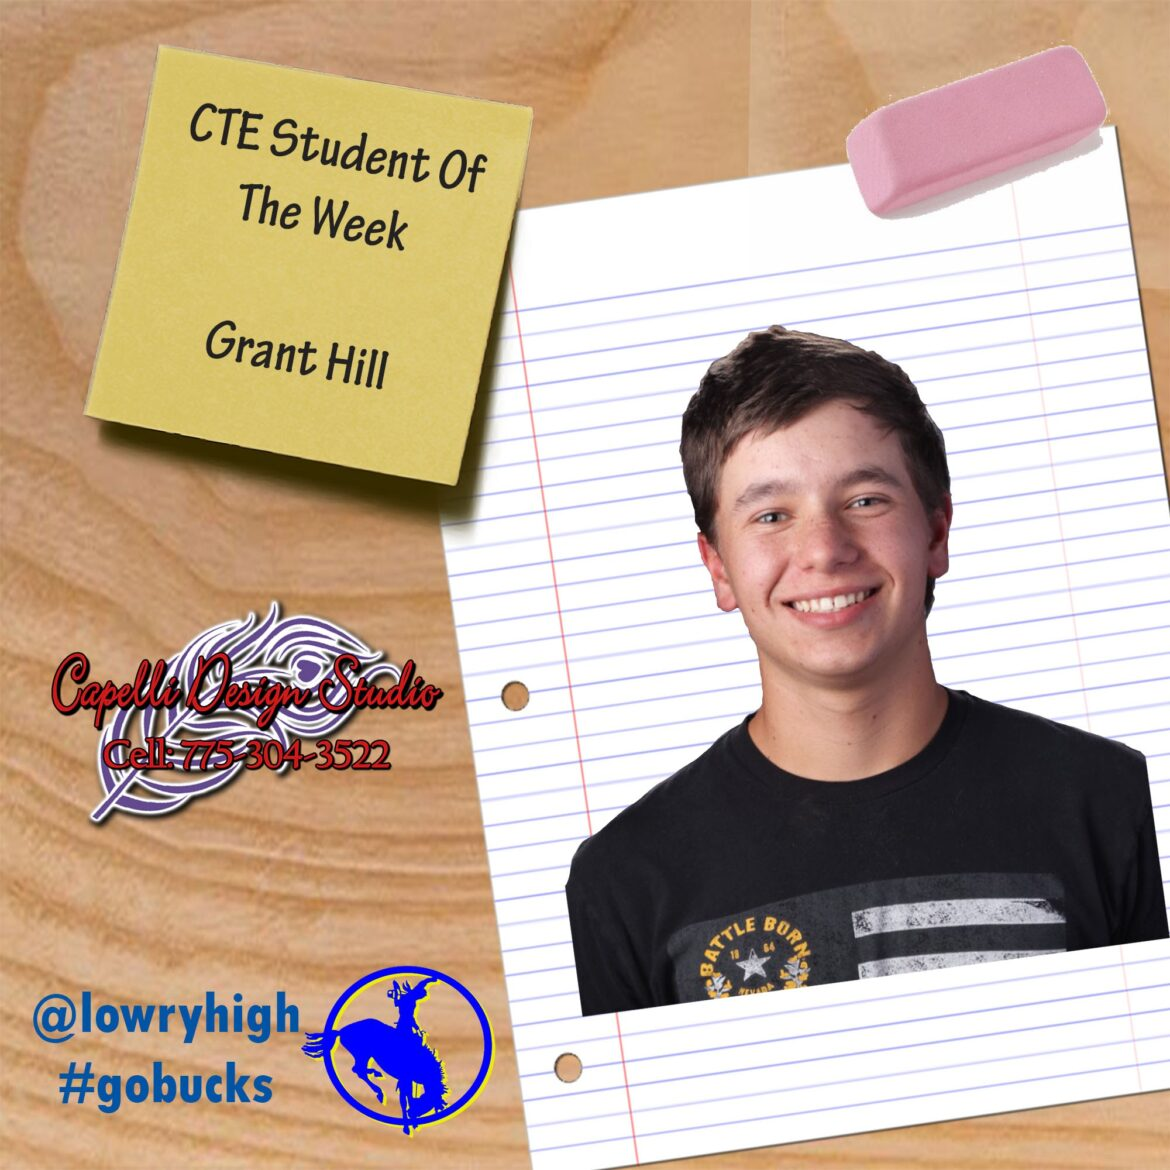 Student of the Week: Grant Hill